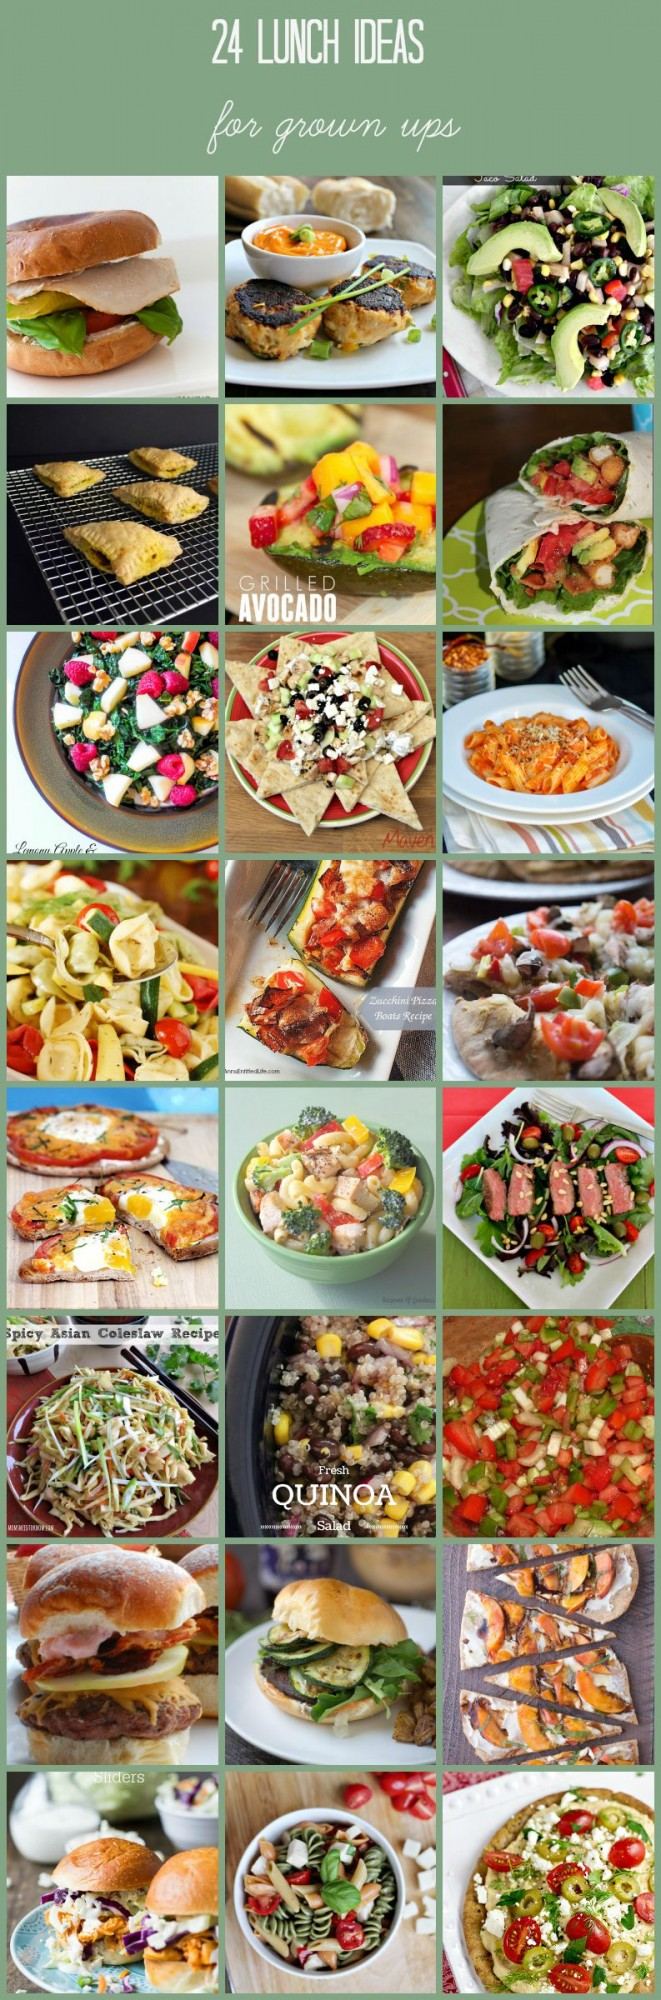 24-Lunch-Ideas-for-Grown-ups recipes